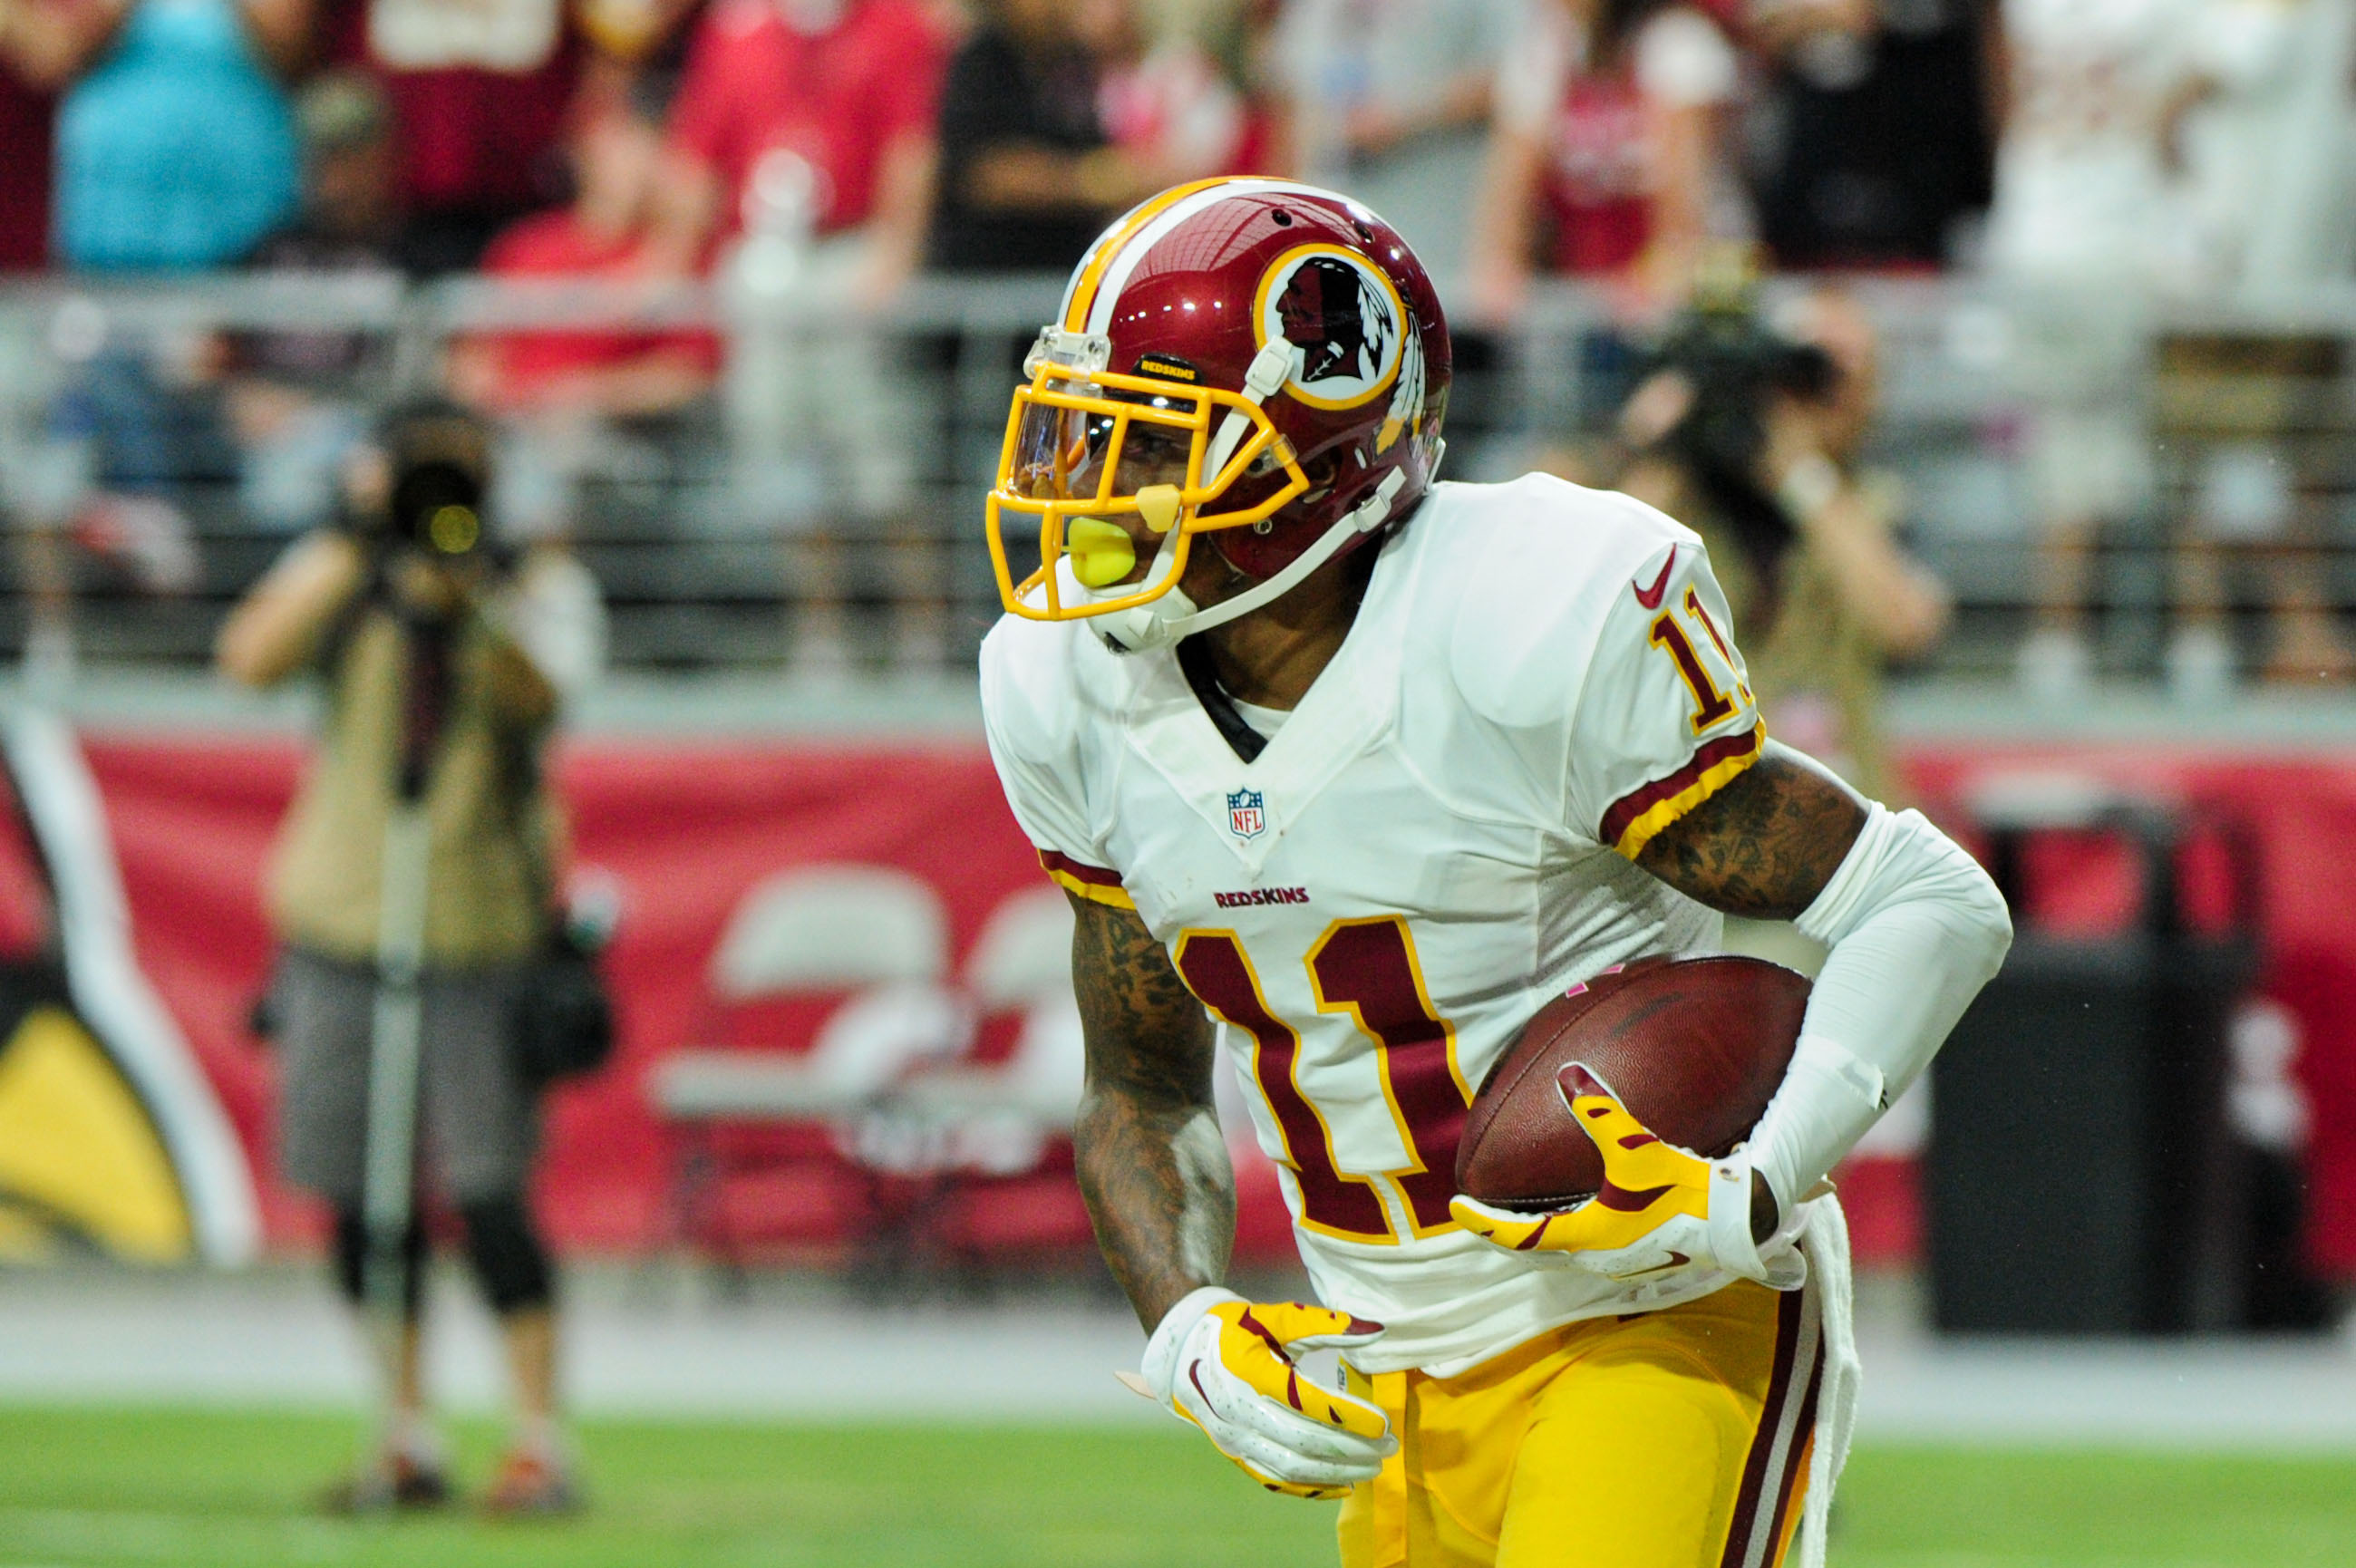 Redskins WR DeSean Jackson Suffers Separated Shoulder